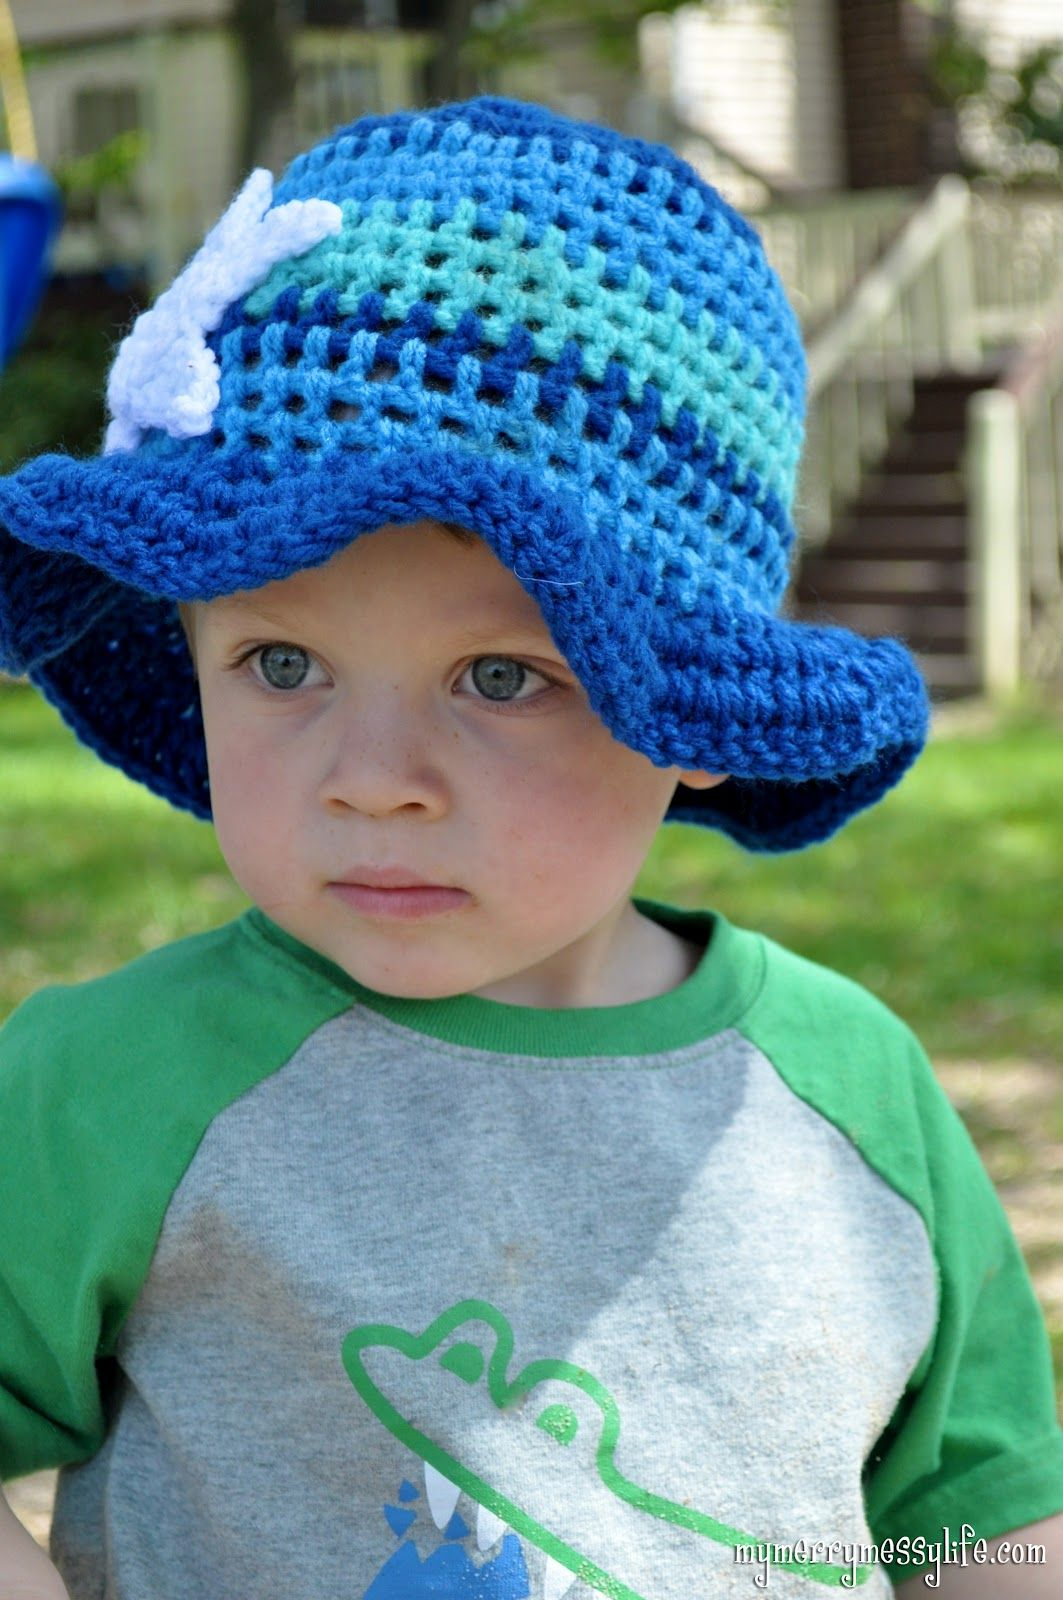 Crochet toddler boy sun hat free crochet pattern crochet crochet toddler boy sun hat free crochet pattern bankloansurffo Choice Image